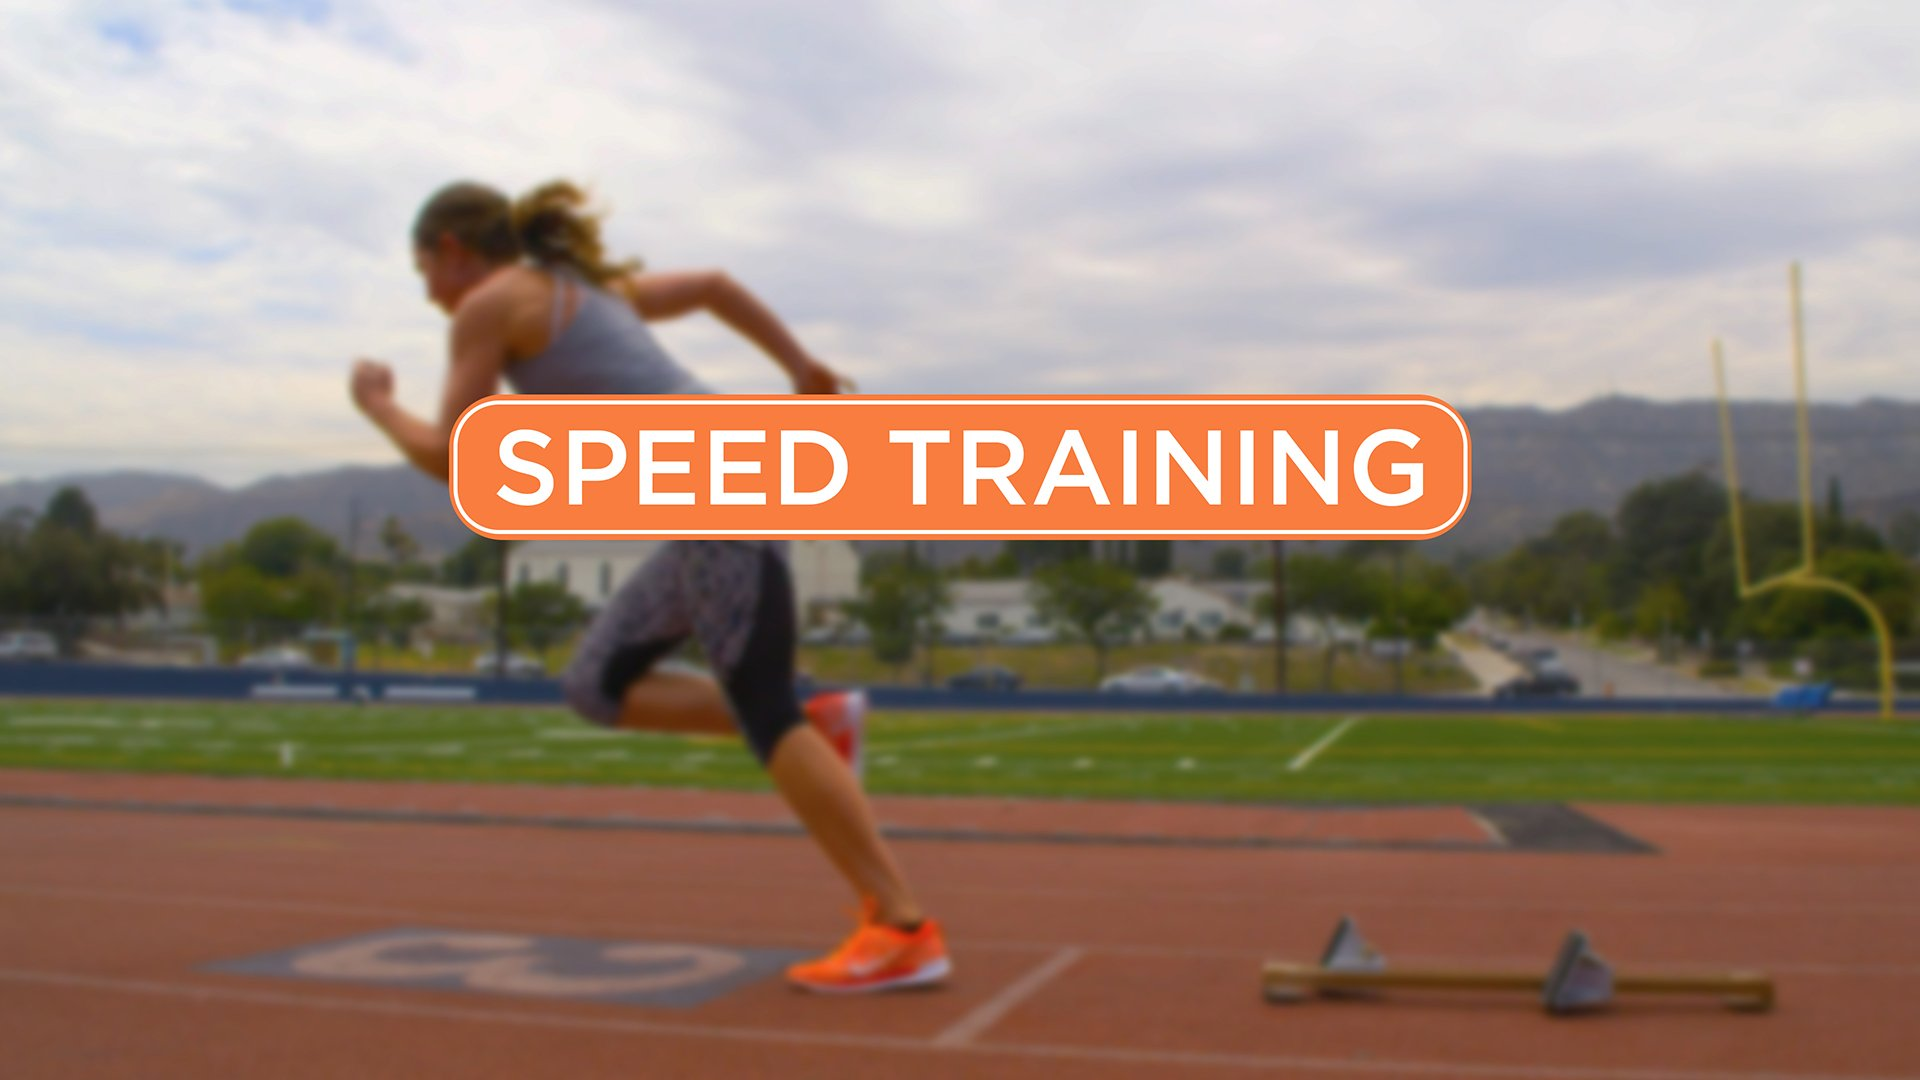 4 week speed training program